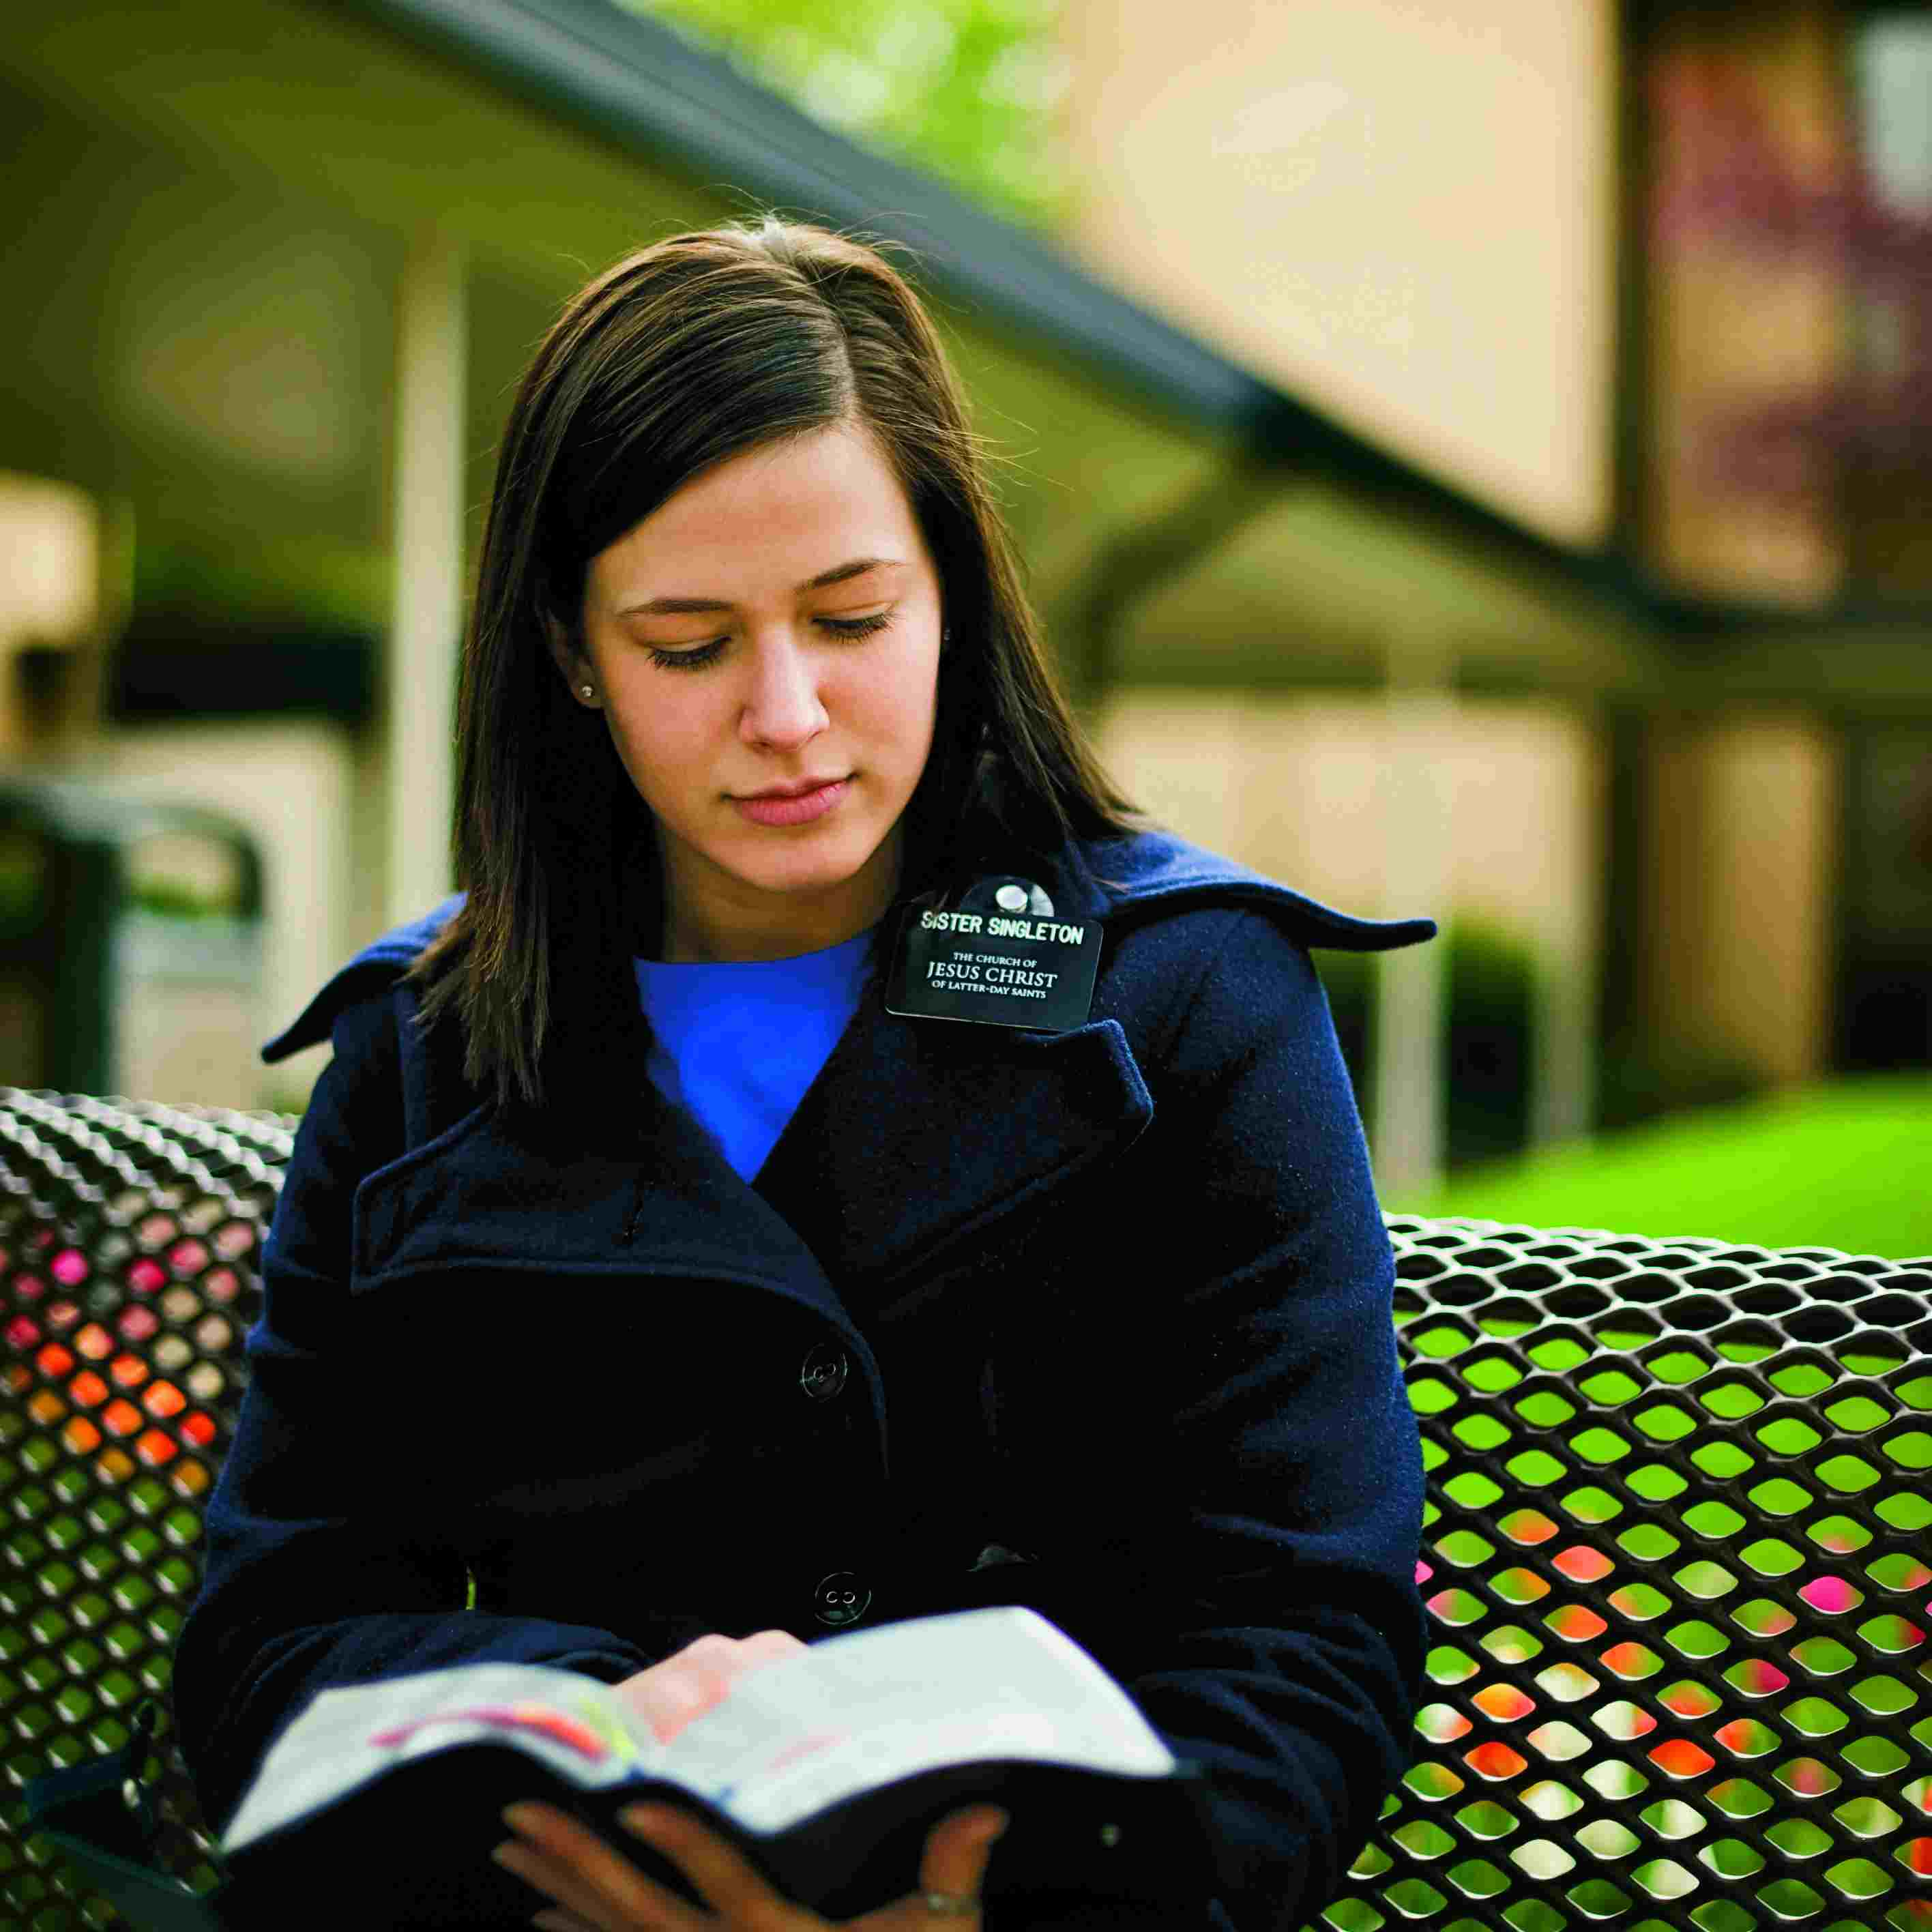 10 Practical Ways to Prepare for an LDS Mission